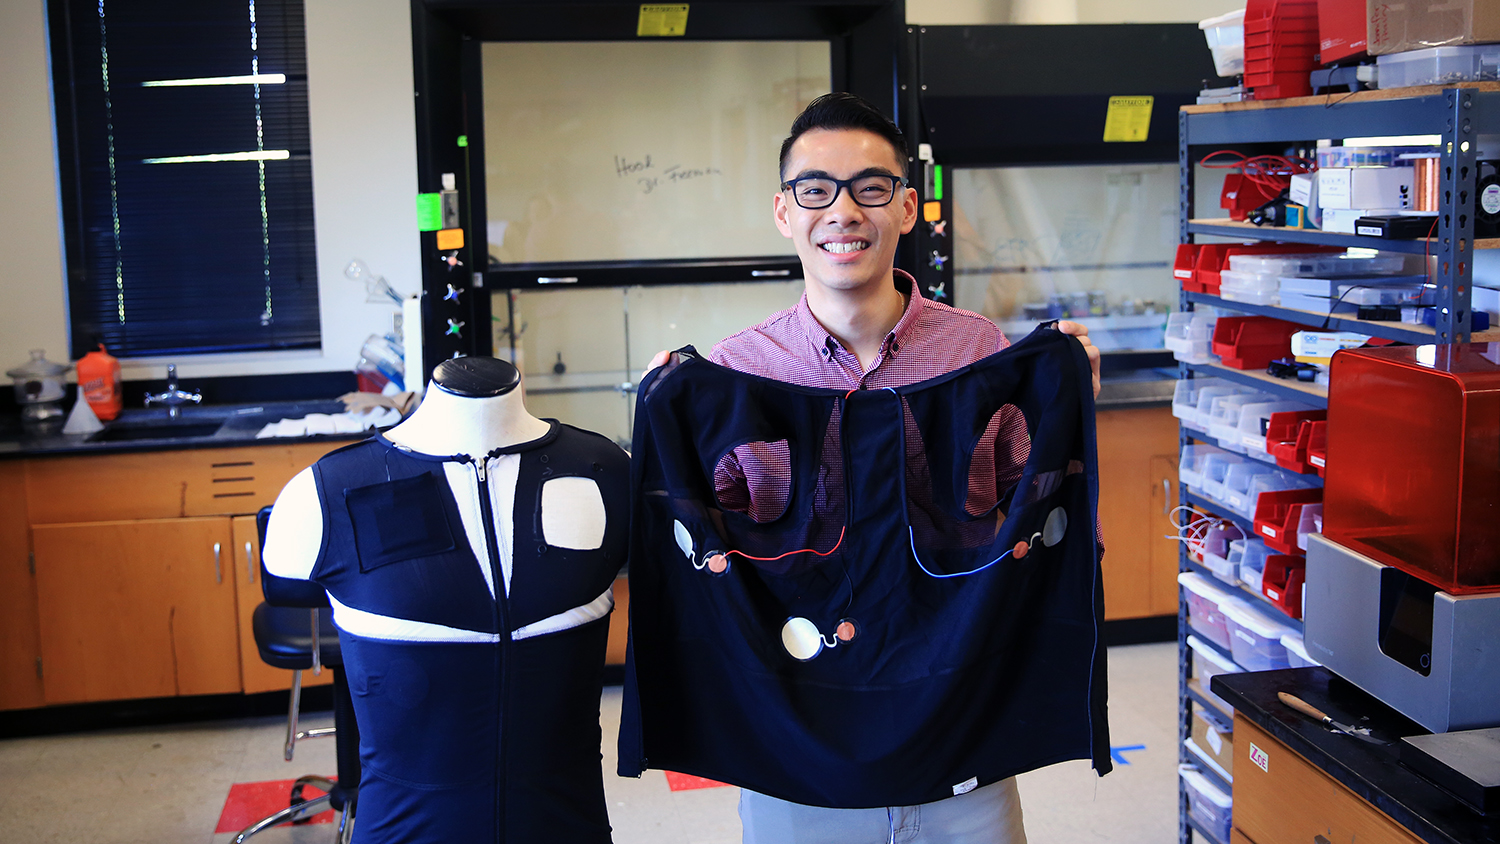 Braden Li shows off a self-powered ECG-sensing shirt